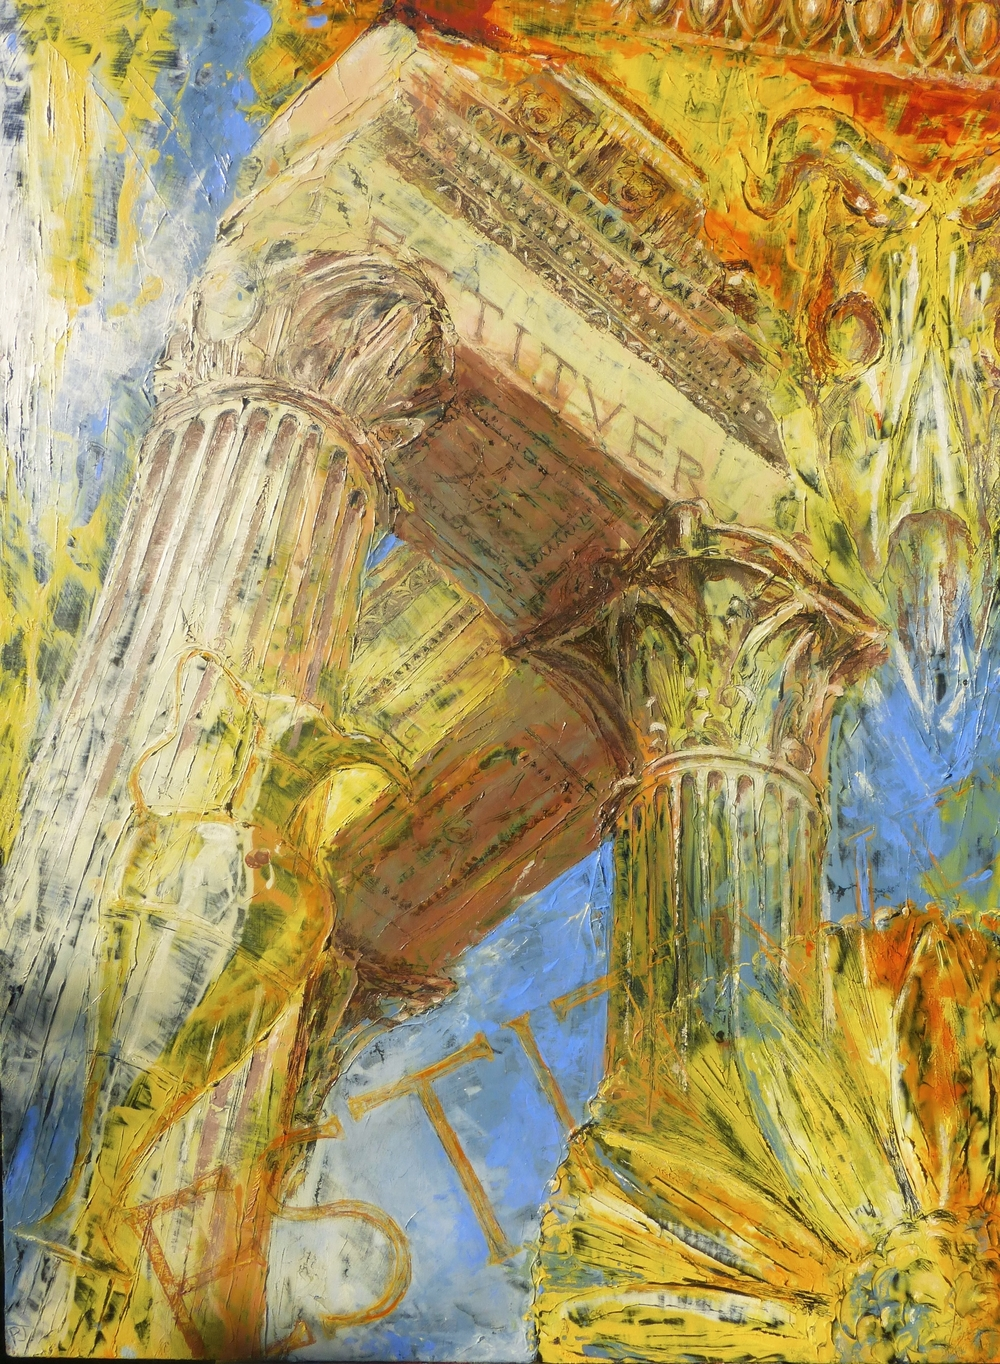 Temple of Vespasian, Forum, Rome, Oil on canvas, 120x90cm